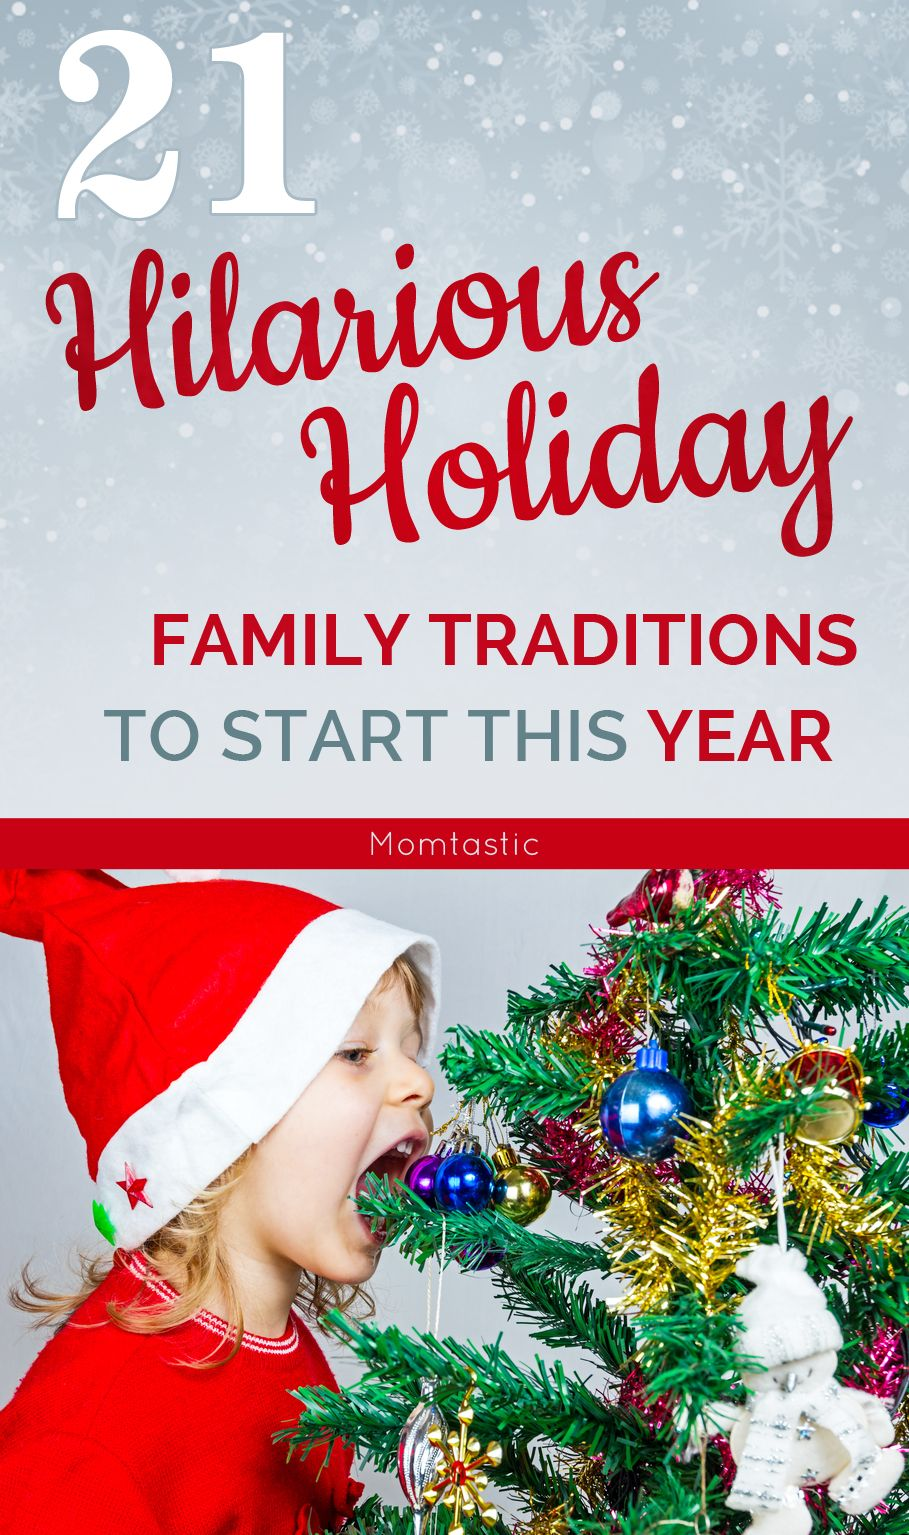 19 Hilarious Christmas Traditions To Start This Year | Christmas ...